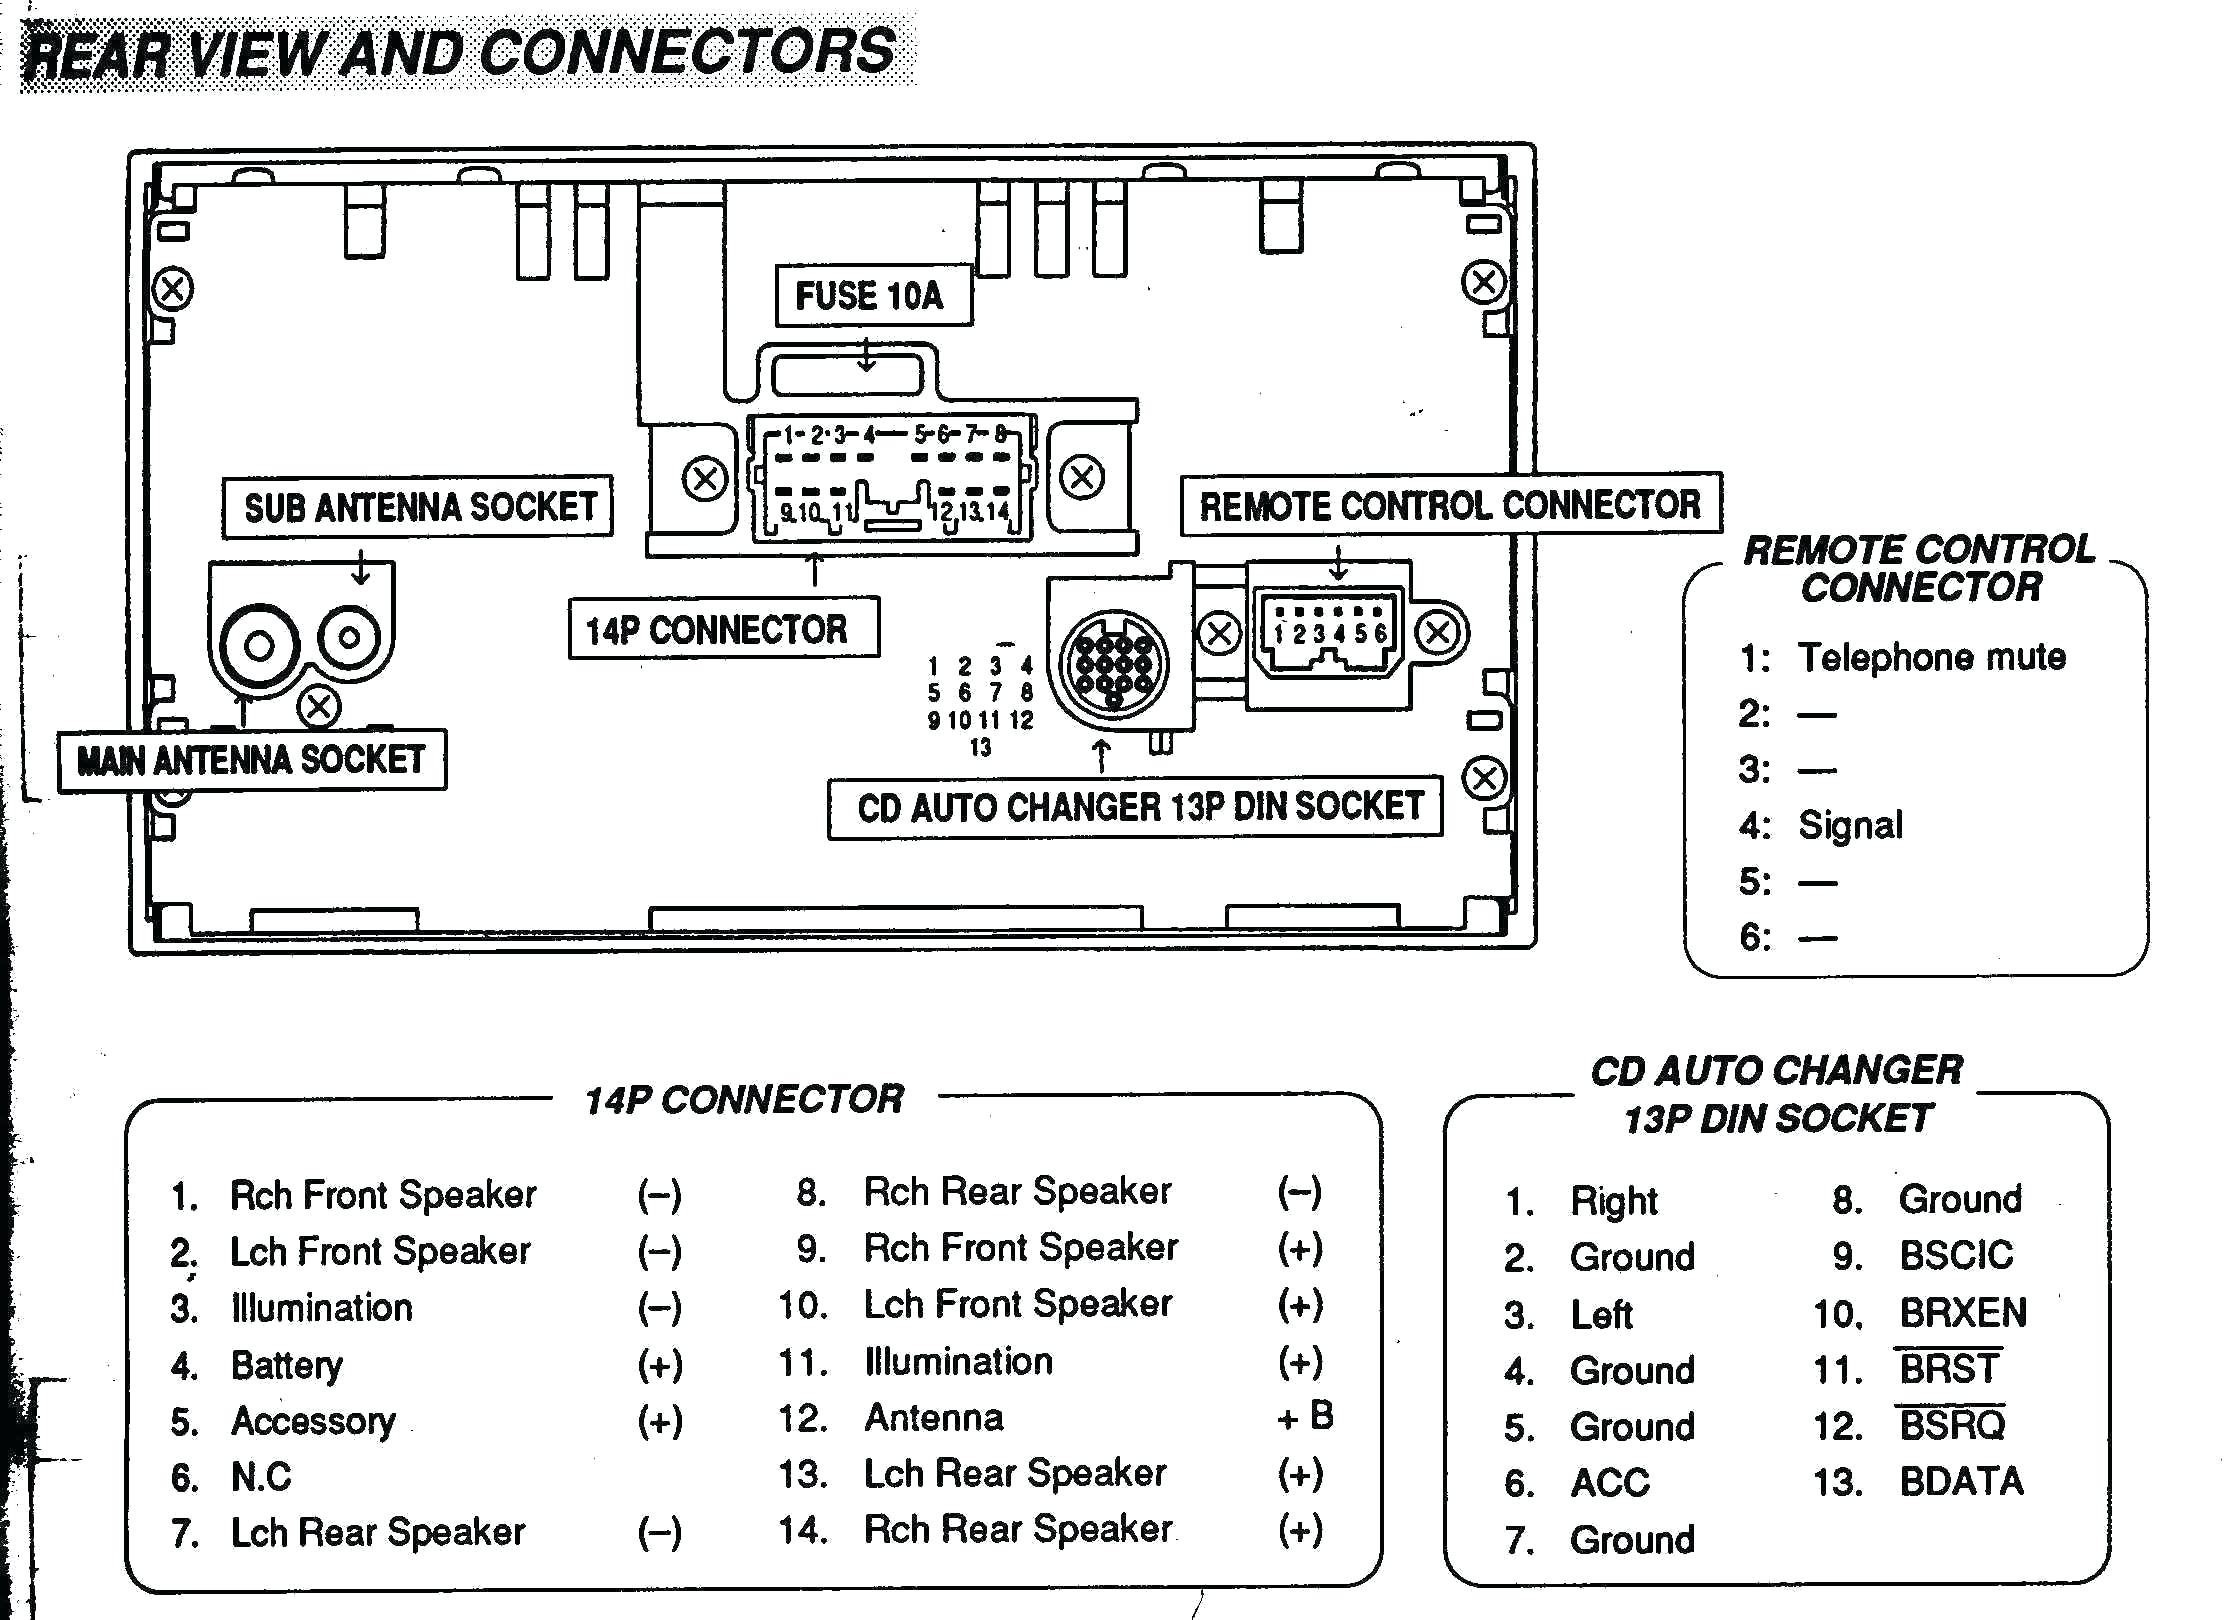 Bmw Wiring Diagram New Lovely Bmw X5 Radio Wiring Diagram Gallery Electrical and Wiring